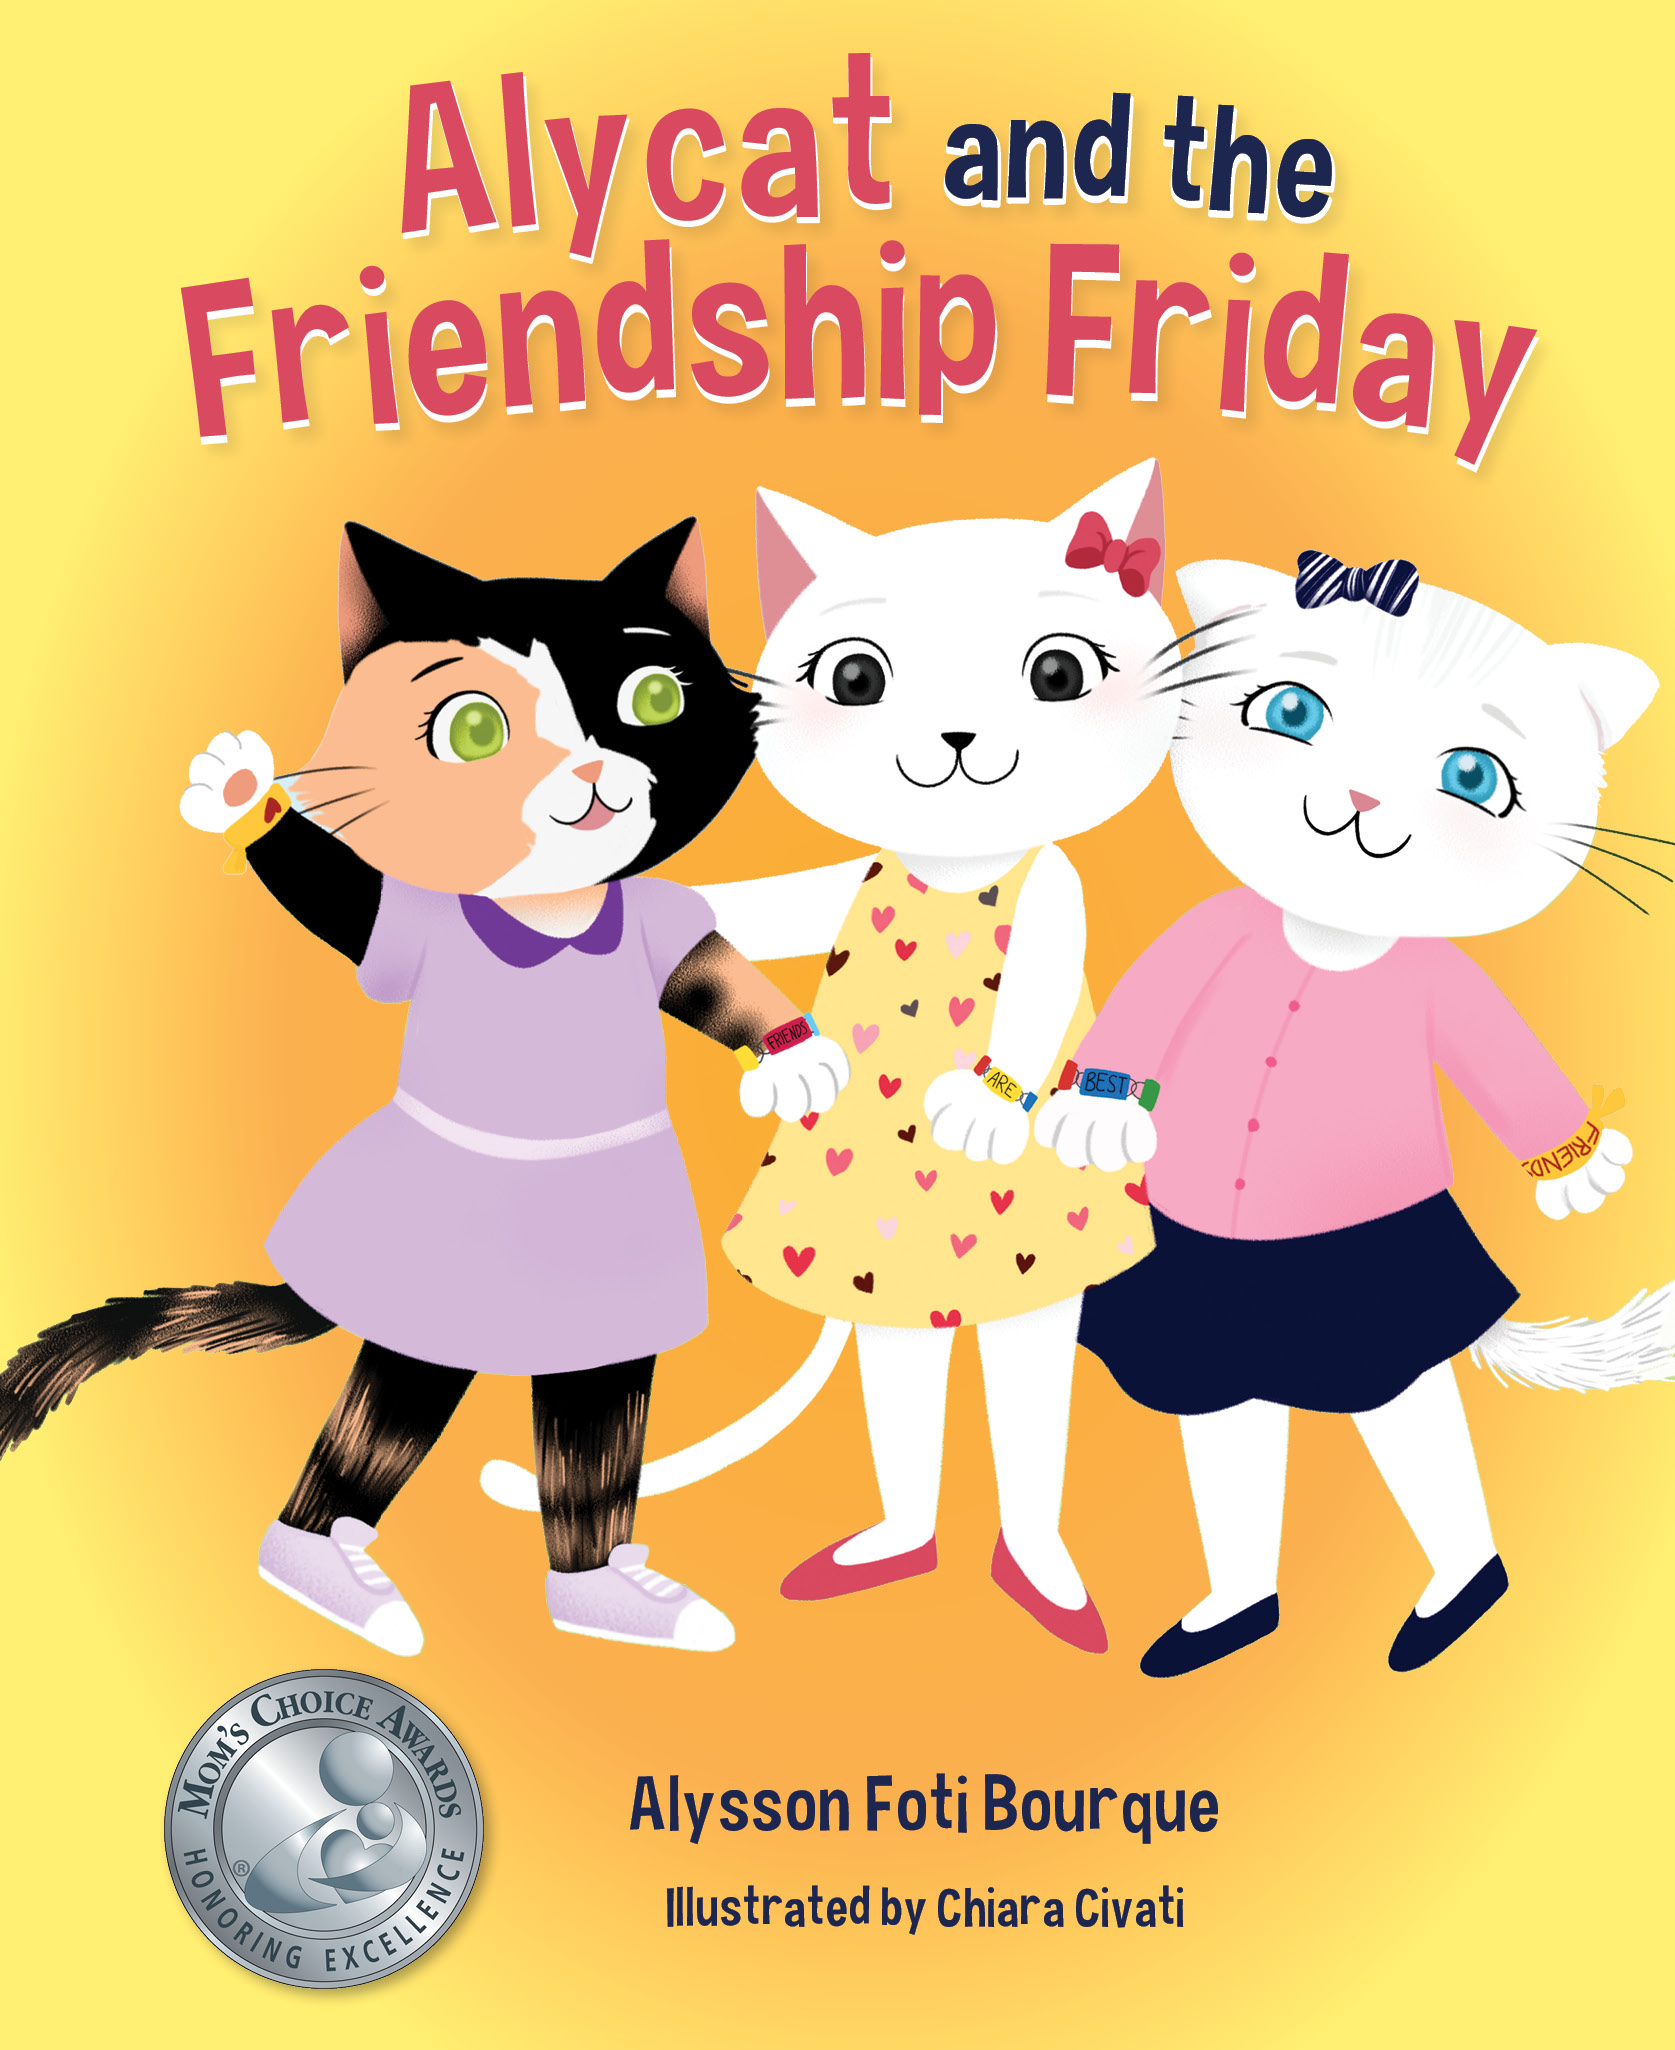 https://mascotbooks.com/wp-content/uploads/2018/08/AlycatandtheFriendshipFriday_Amazon.jpg